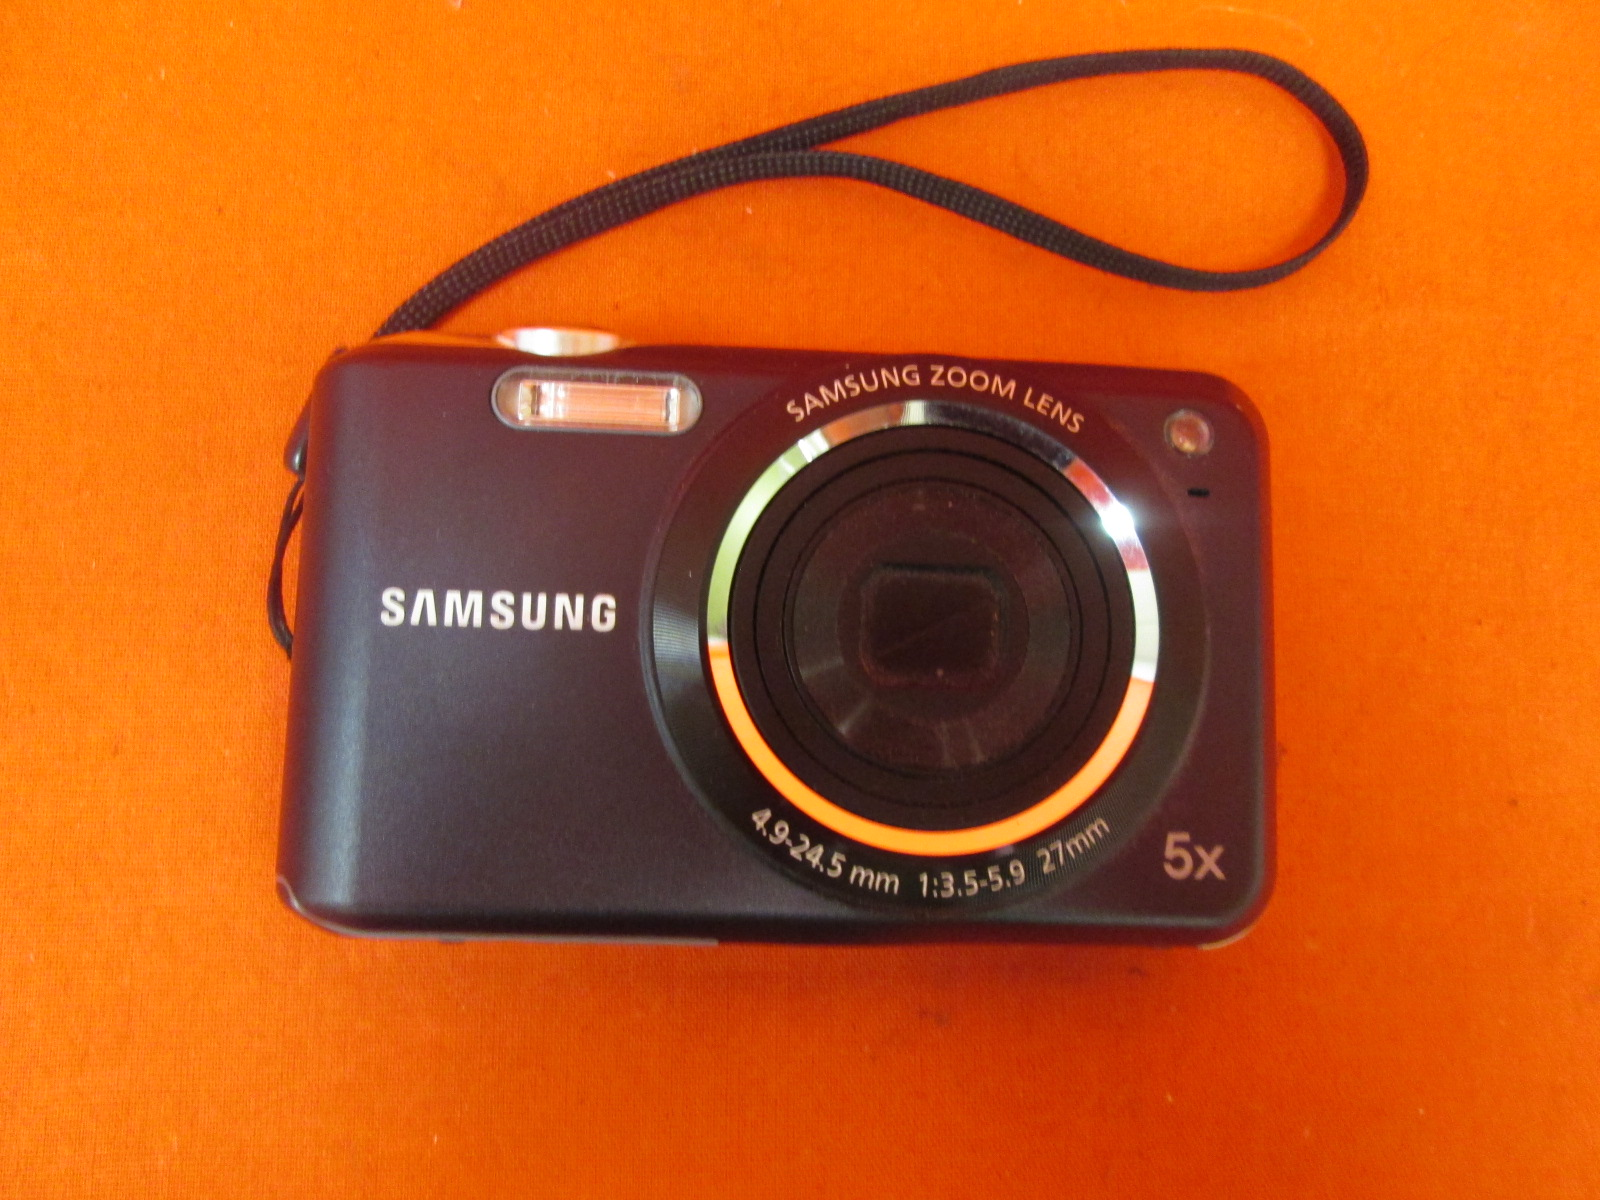 Samsung Sl Series SL600 12.1MP Digital Camera Incomplete